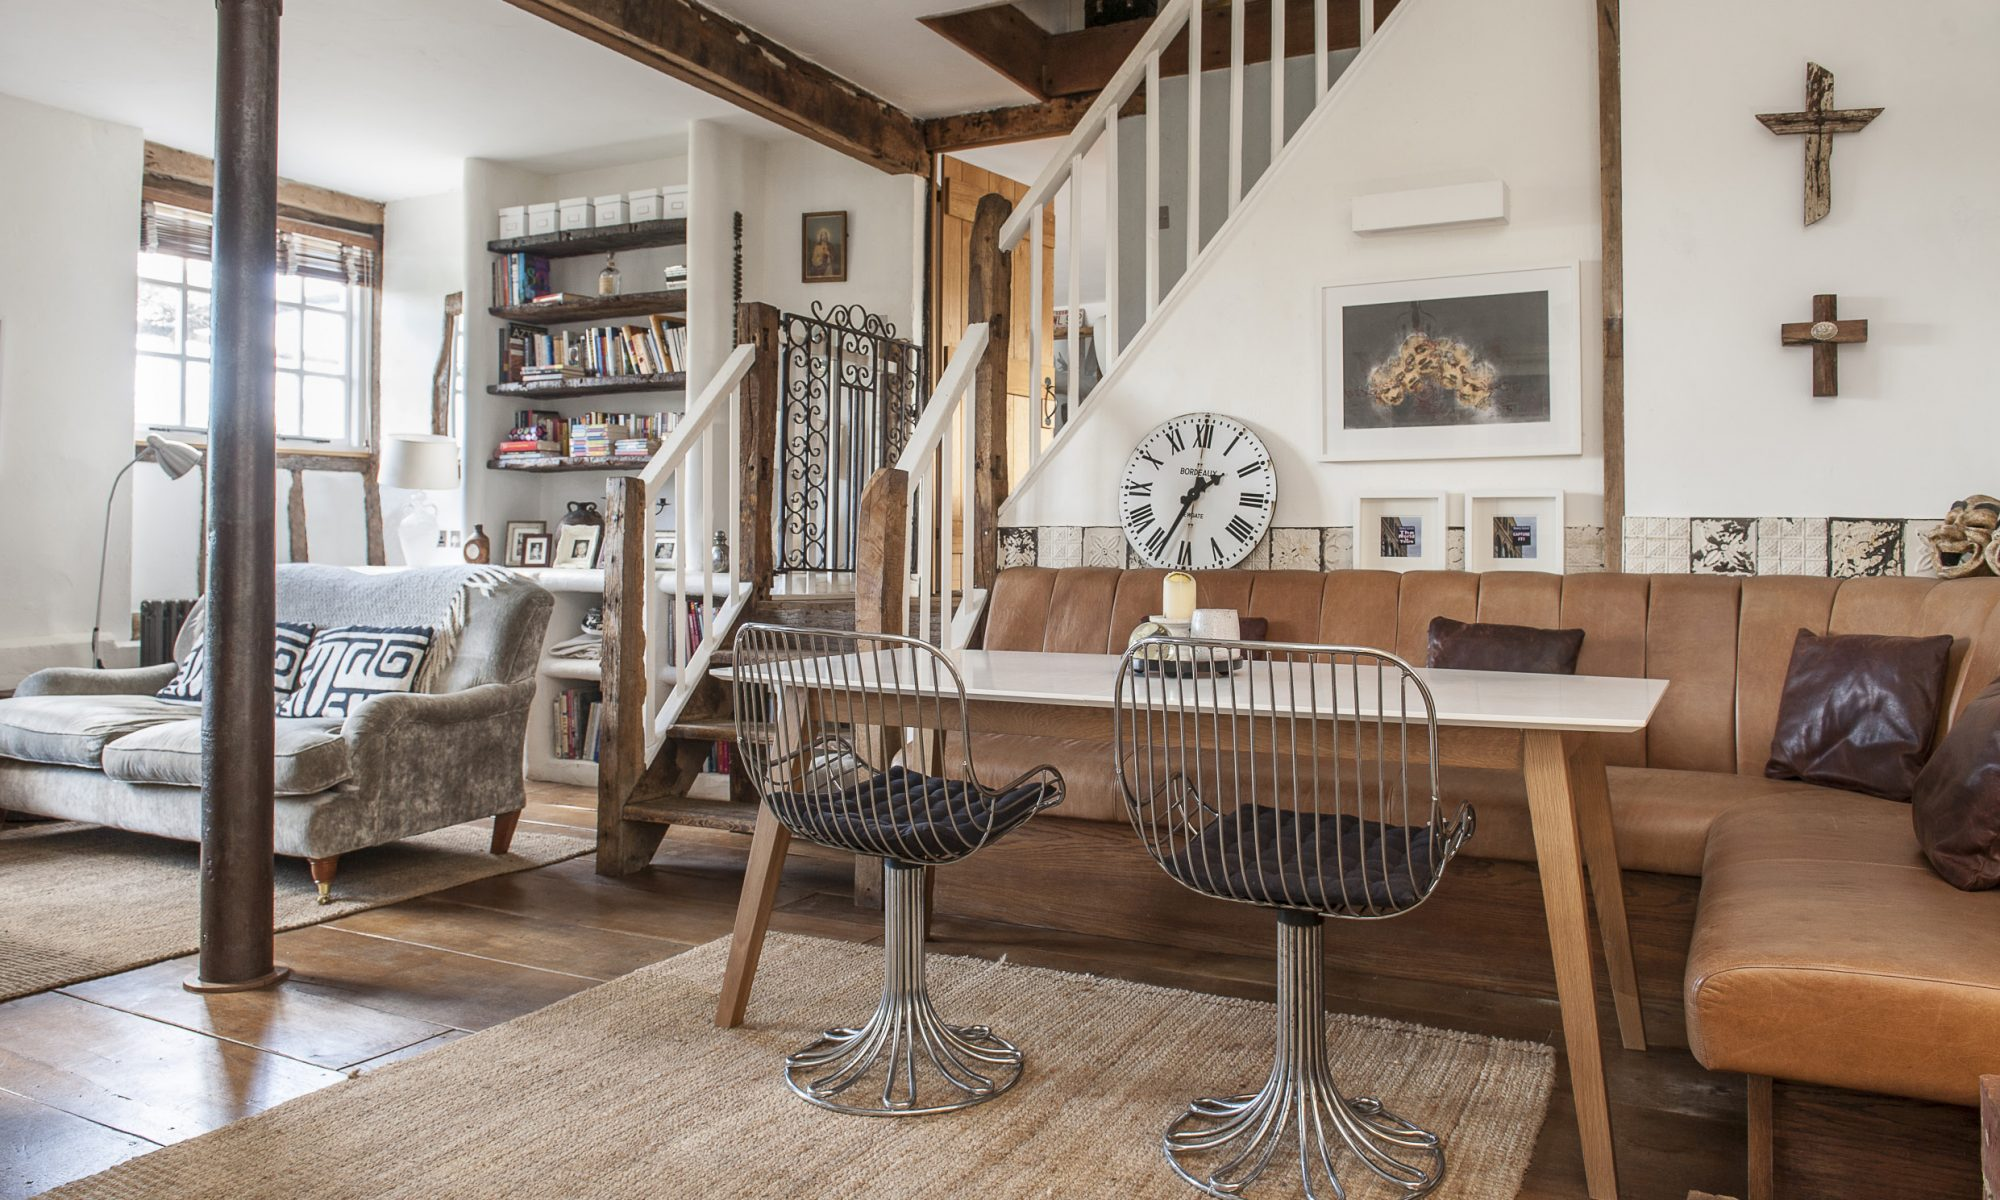 Blending soaring ceilings with middle-eastern furniture finds, the success of Lorraine Kerr's barn conversion lies in her ability to inject a little quirkiness into a traditional, beamed interior to create a stunning family home...